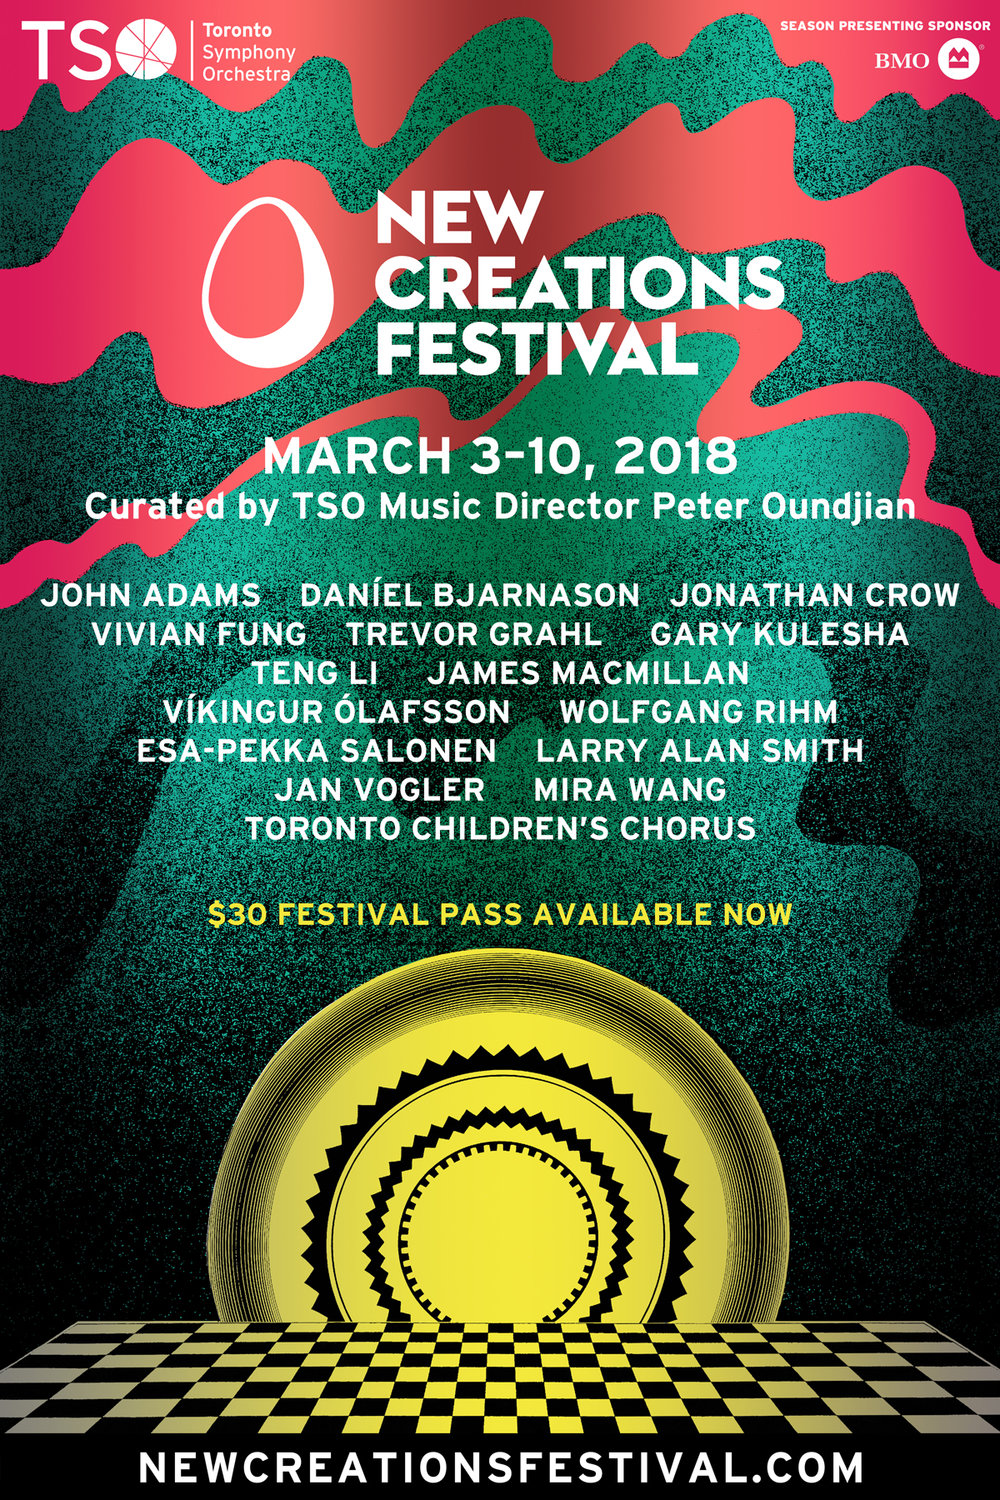 New Creations Festival 2018  Toronto Symphony Orchestra